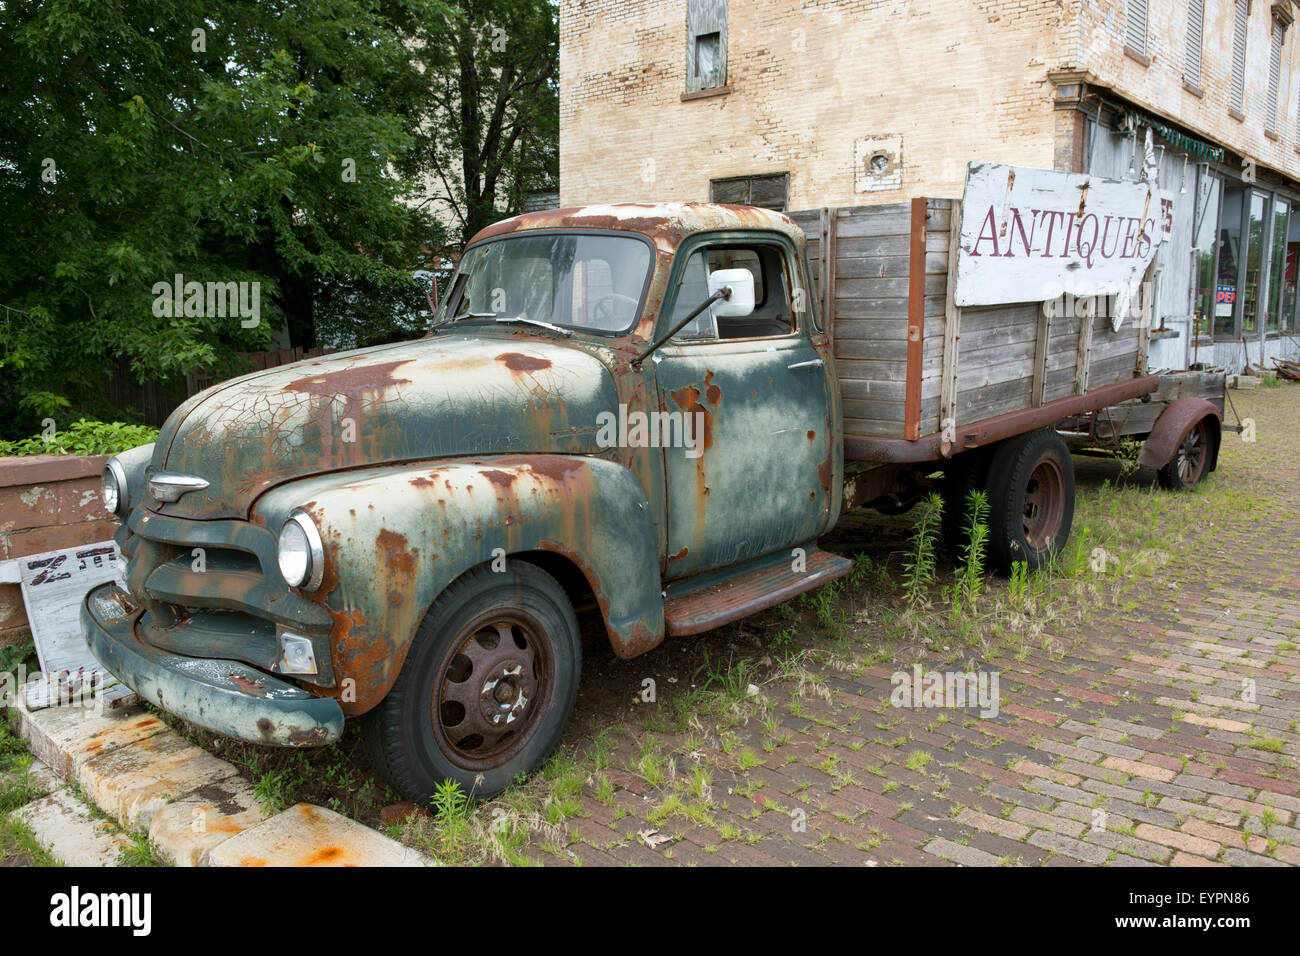 Chevy Truck Stock Photos & Chevy Truck Stock Images - Alamy